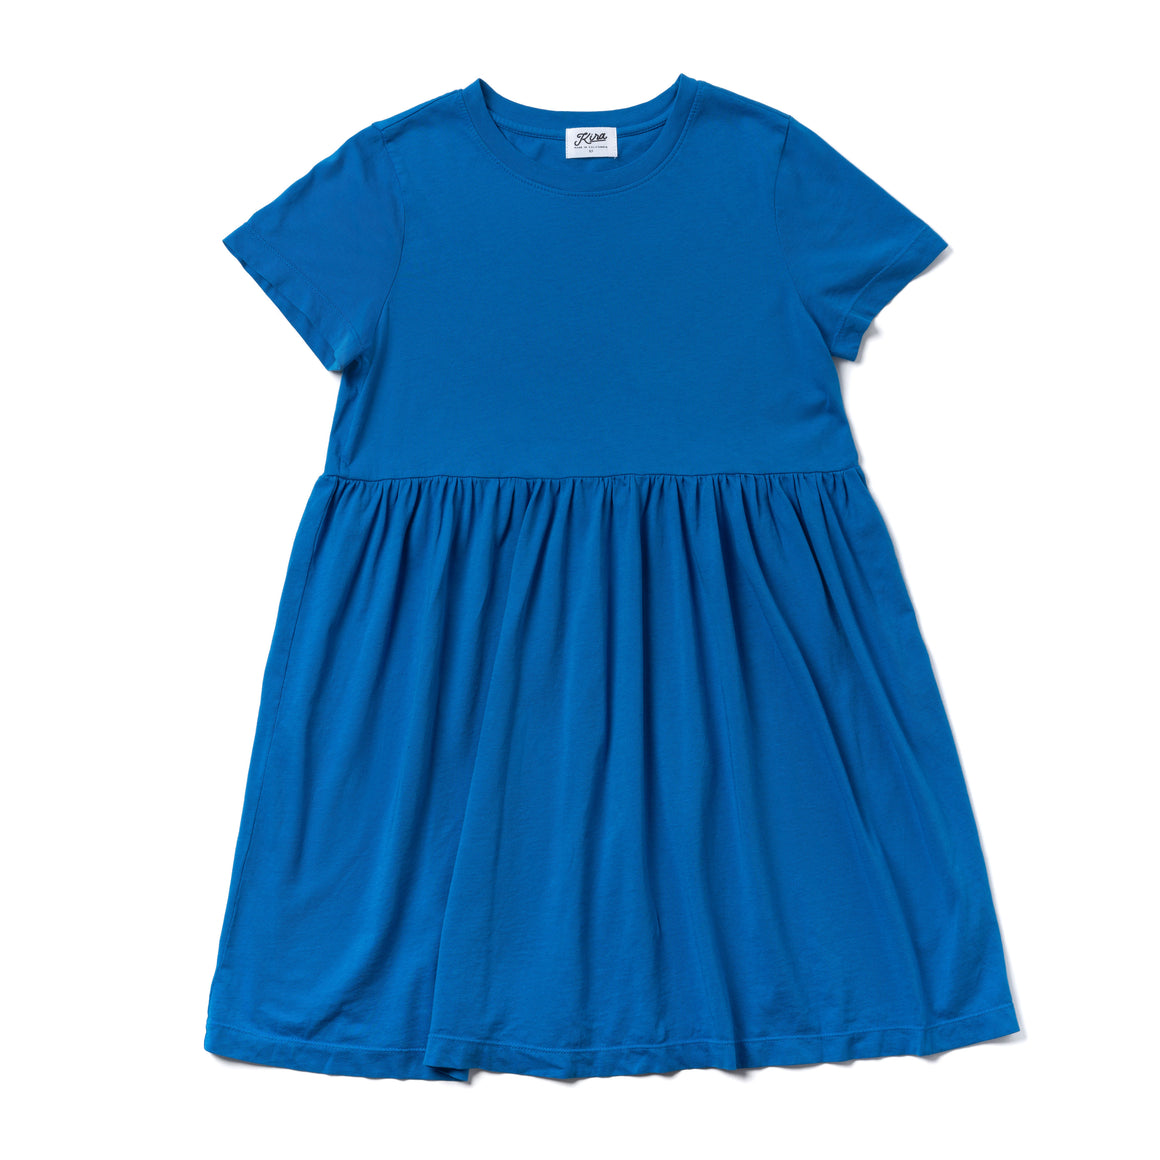 Navy Baby Doll Dress | Women